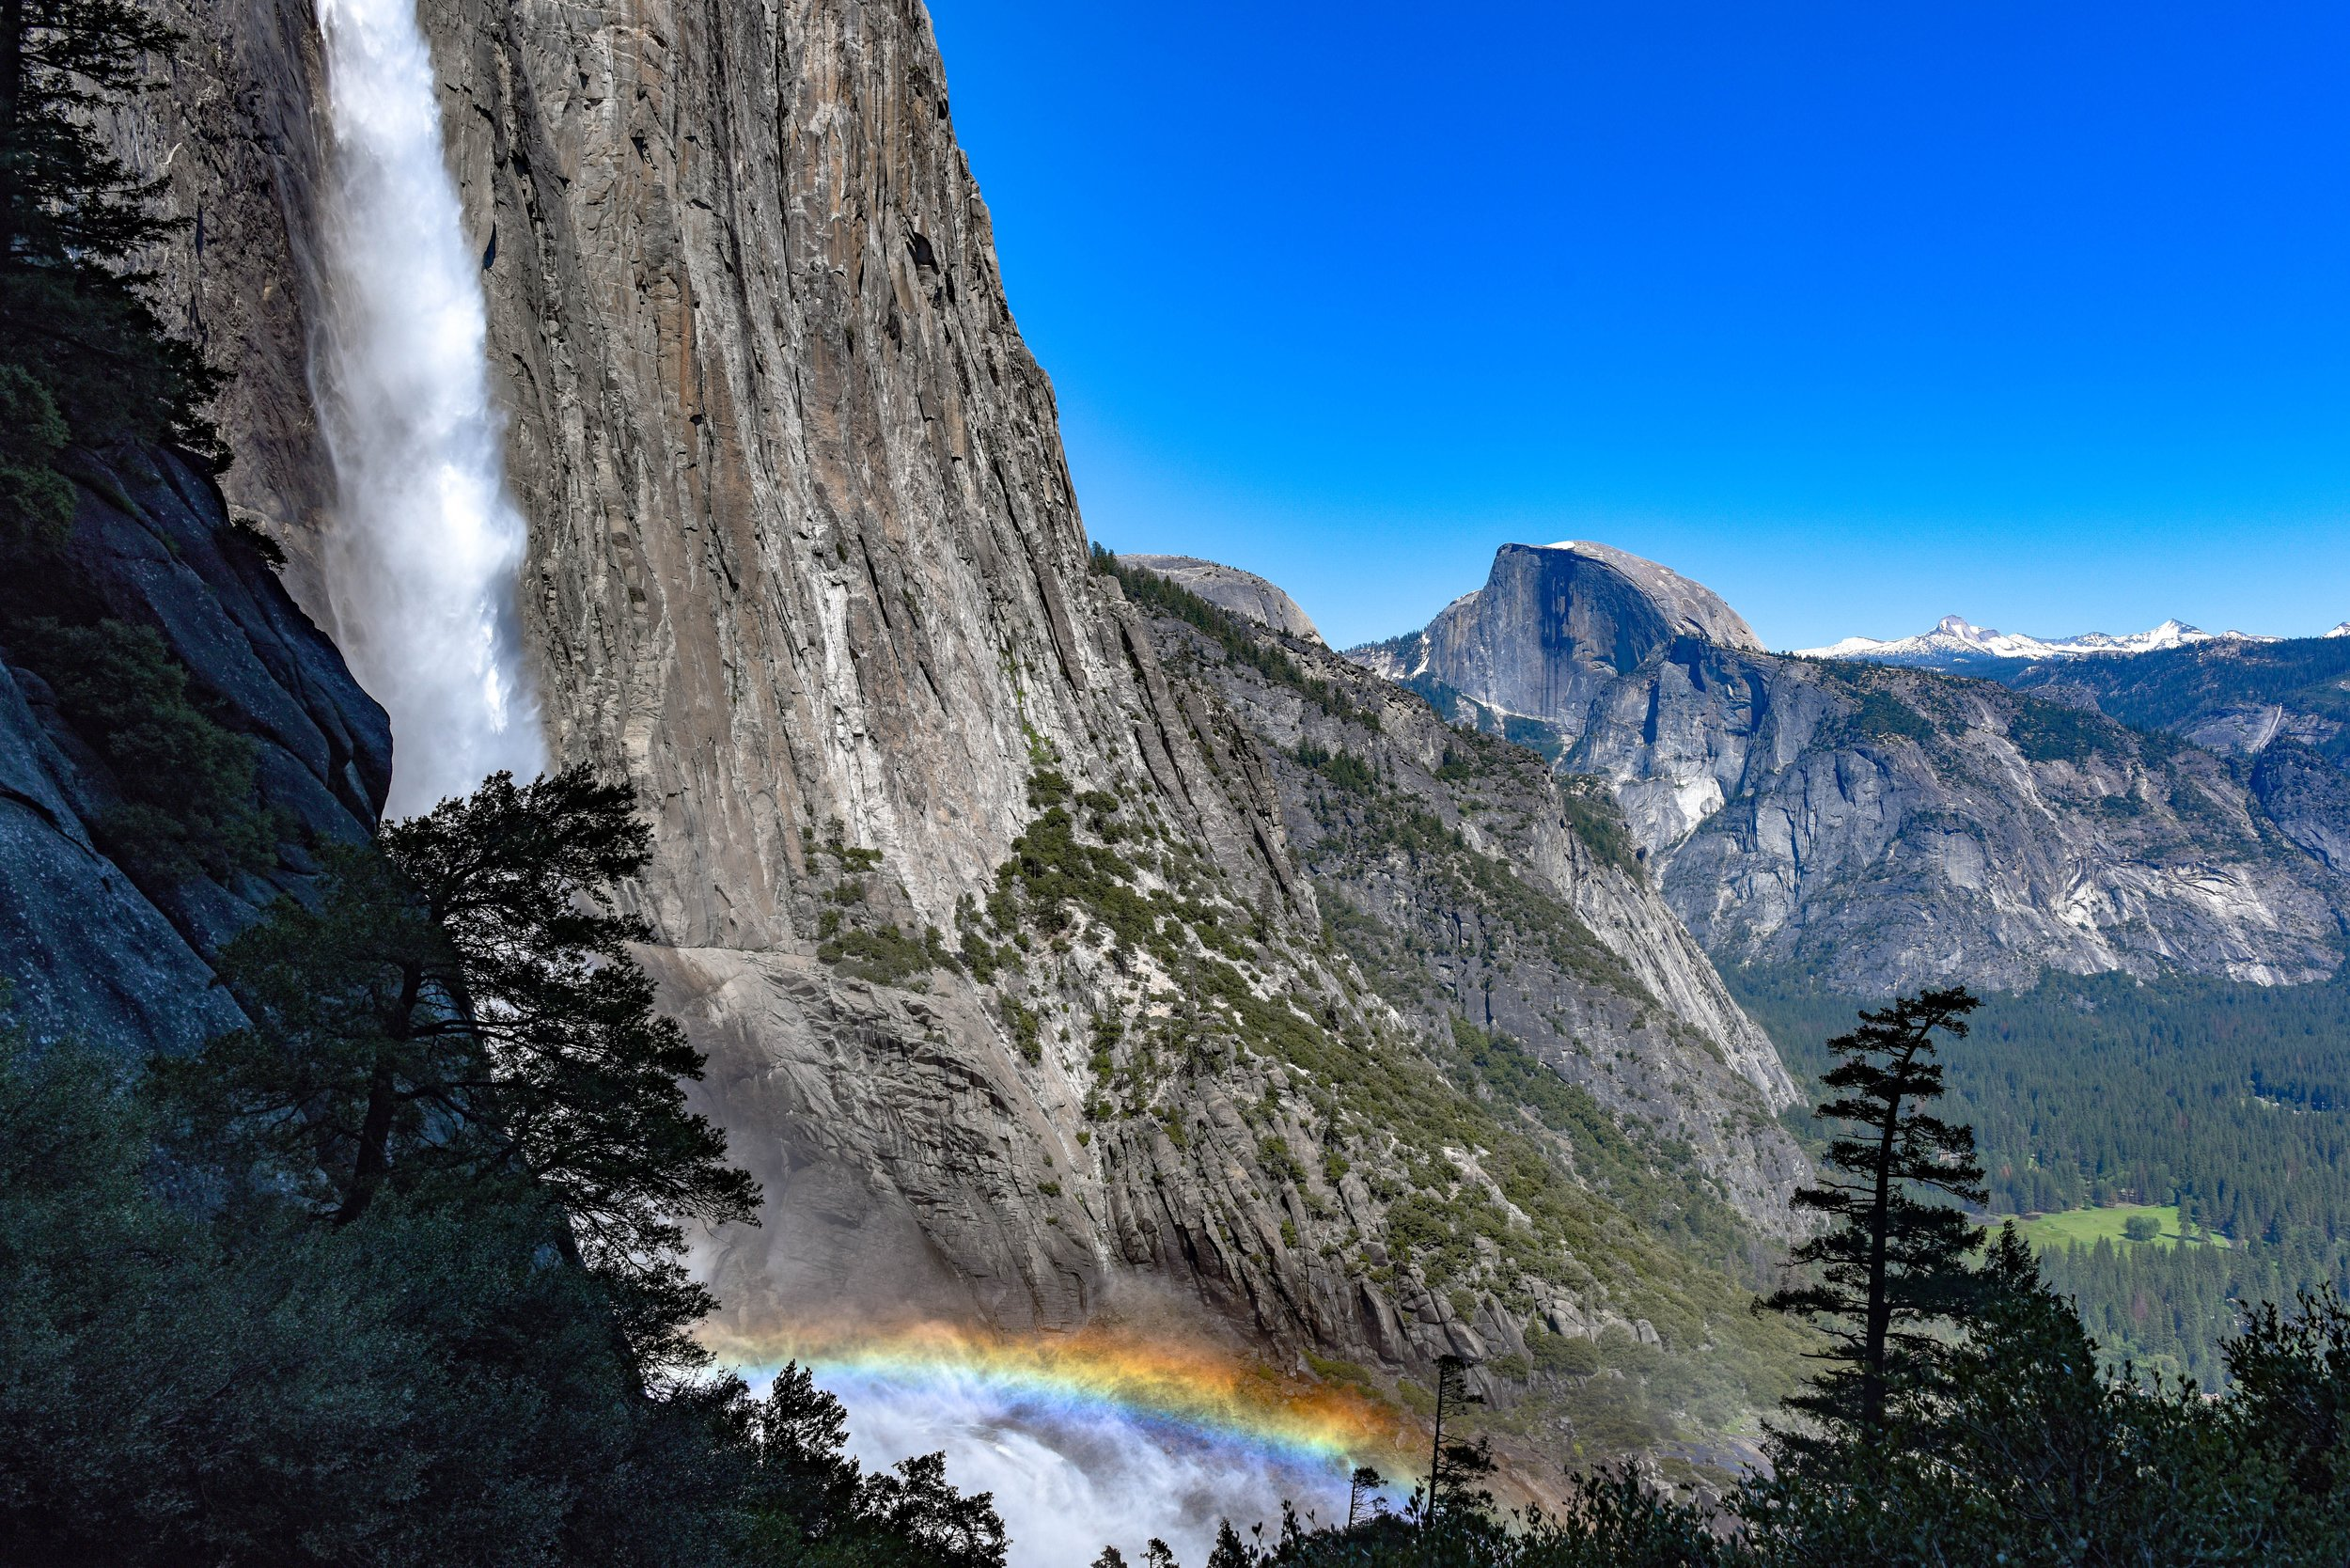 Hiking to the Top of Yosemite Falls is one of the best Yosemite National Park hiking trails.